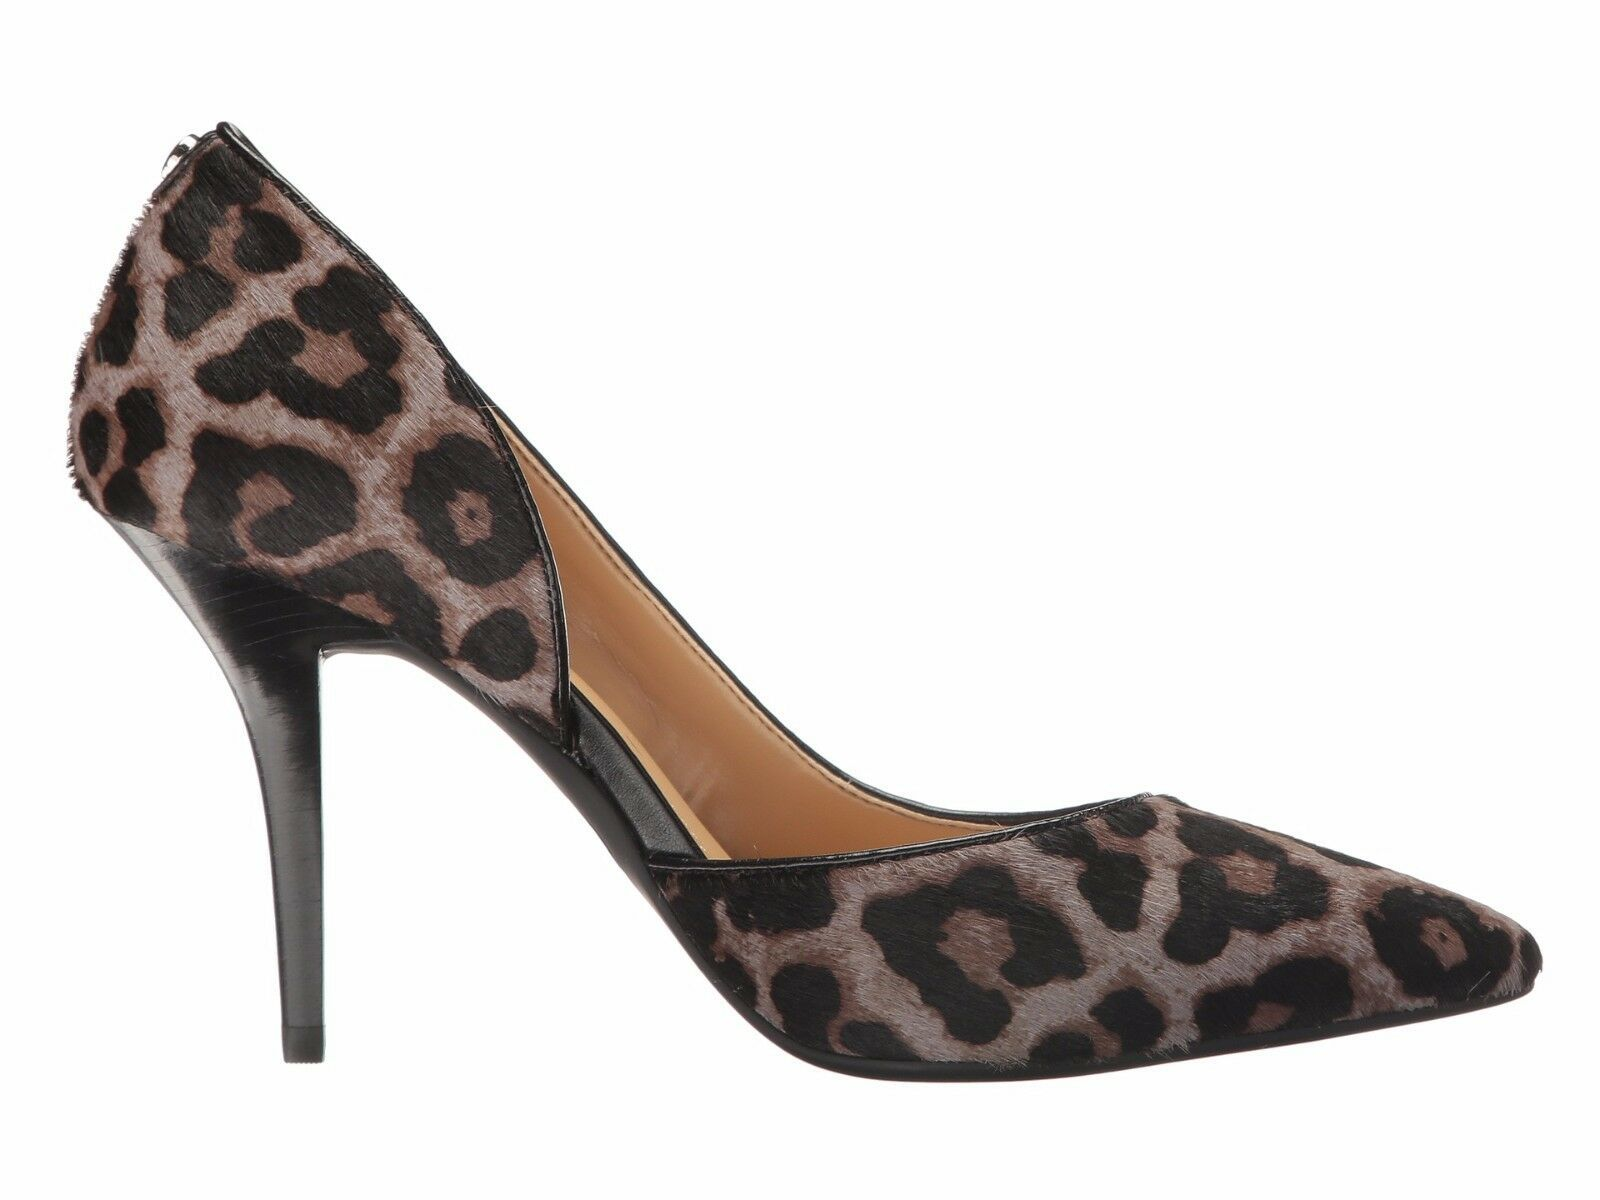 Primary image for New Michael Kors Women Nathalie Flex D'orsay Pumps Grey Animal Variety Sizes